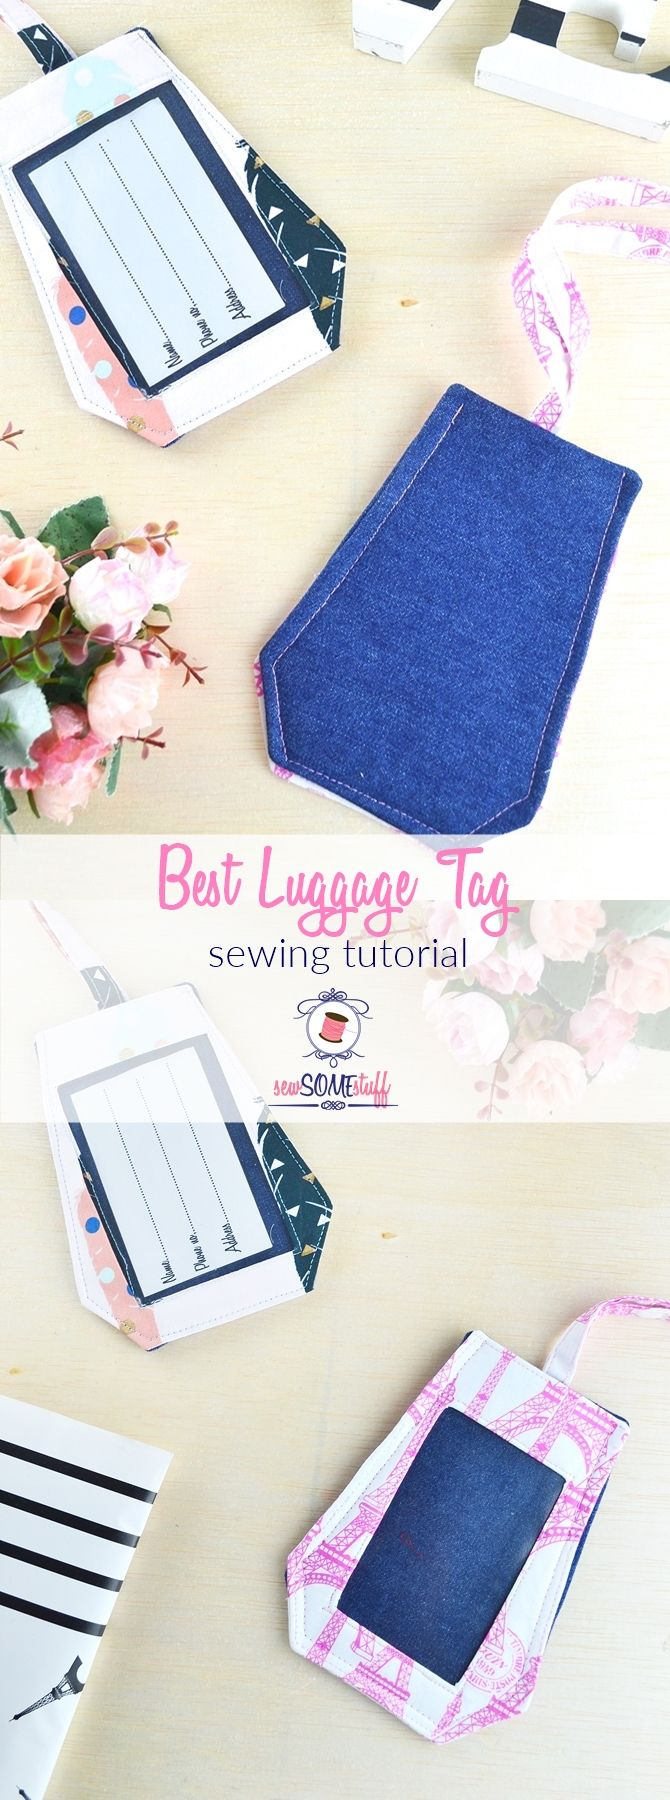 Cute luggage tags tutorial with video | Best fabric luggage tag sewing tutorial | DIY luggage tags |